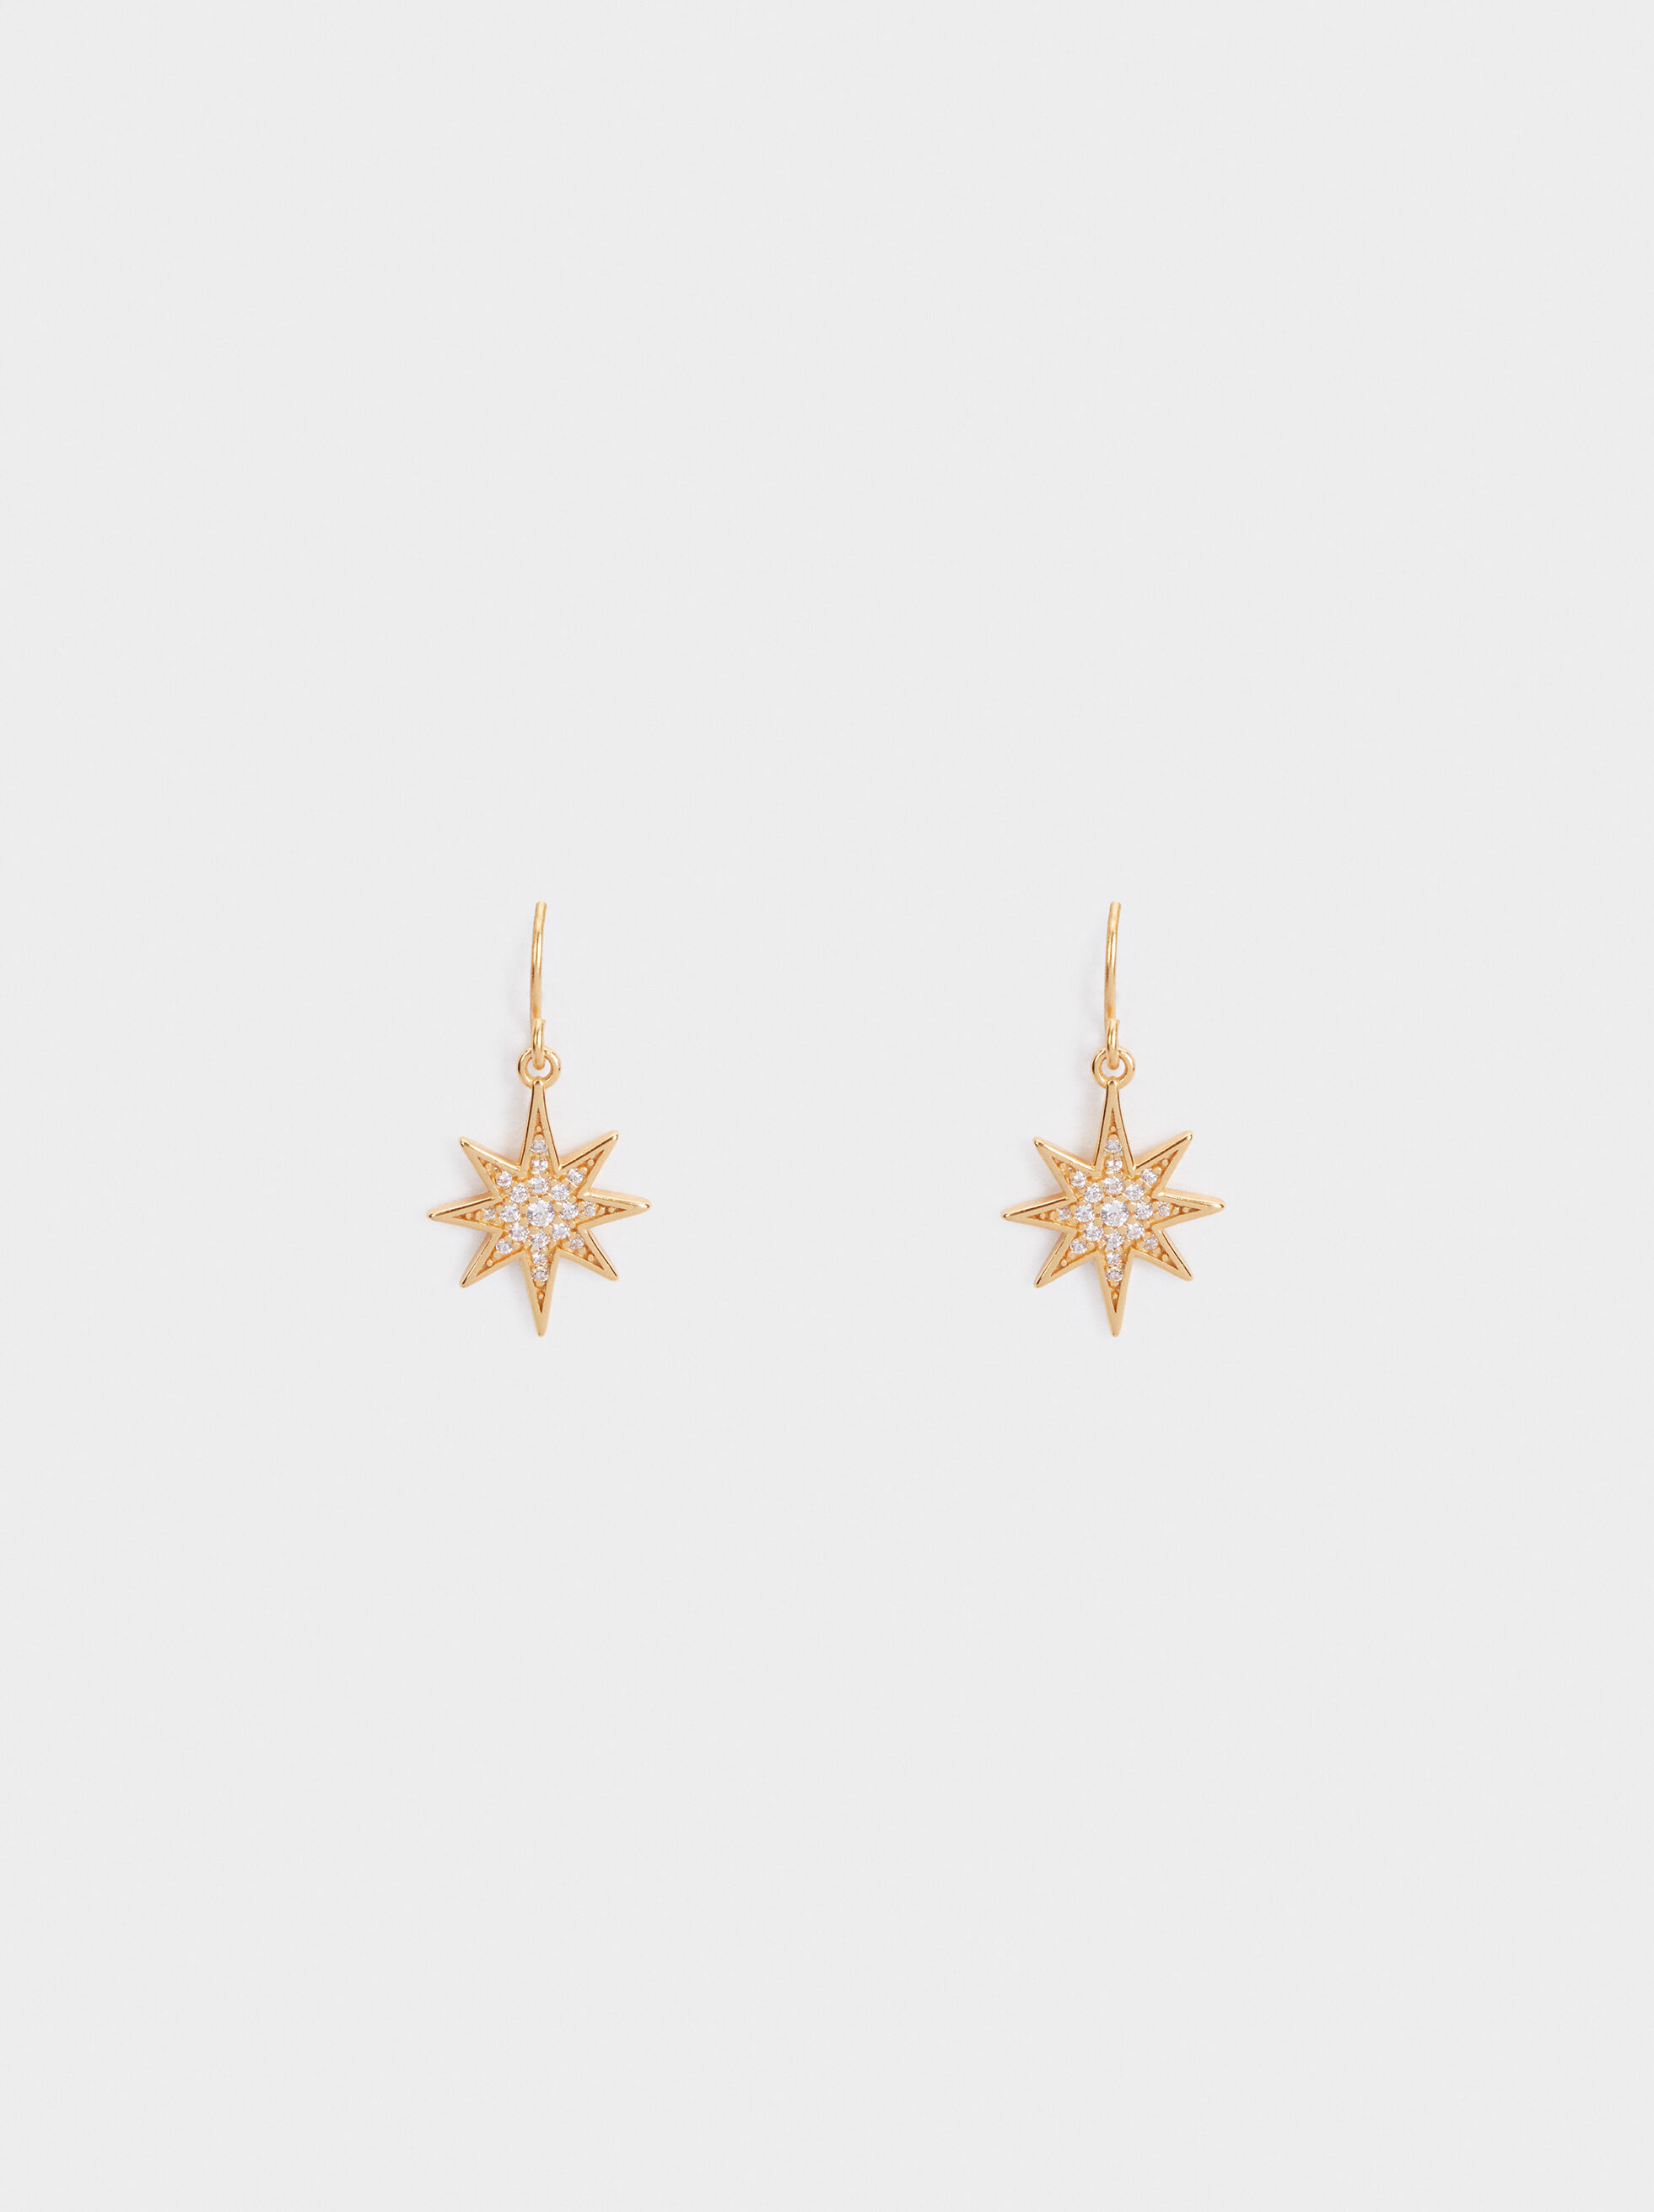 Medium 925 Silver Star Earrings, , hi-res